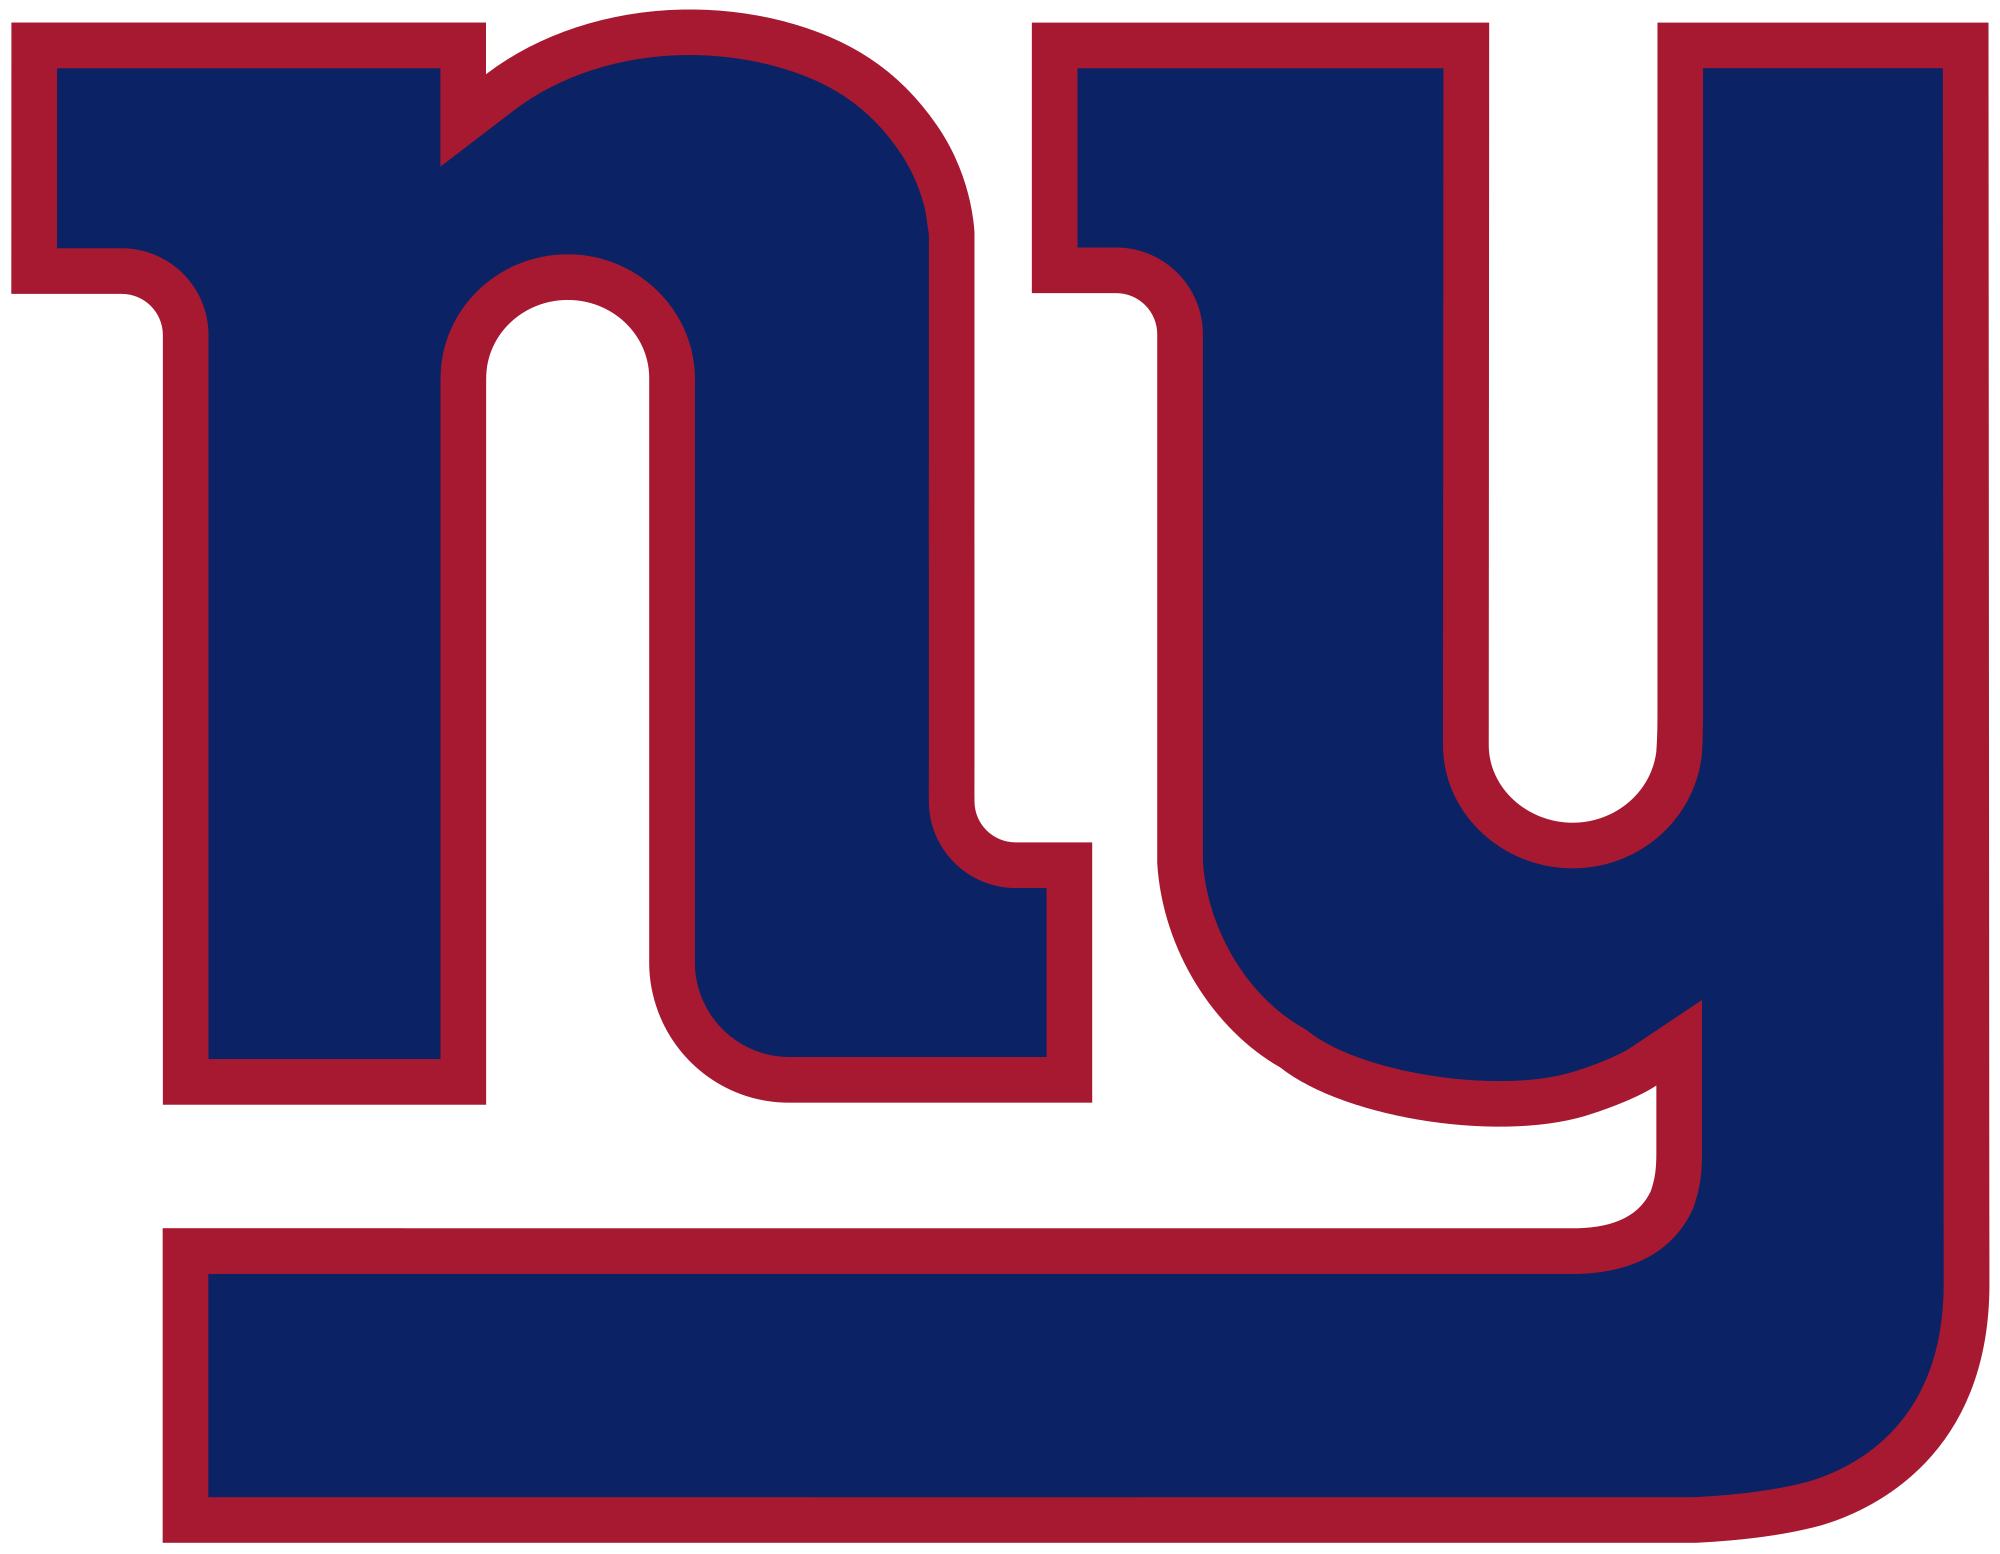 Giants football clipart banner transparent stock File:New York Giants logo.svg - Wikimedia Commons banner transparent stock